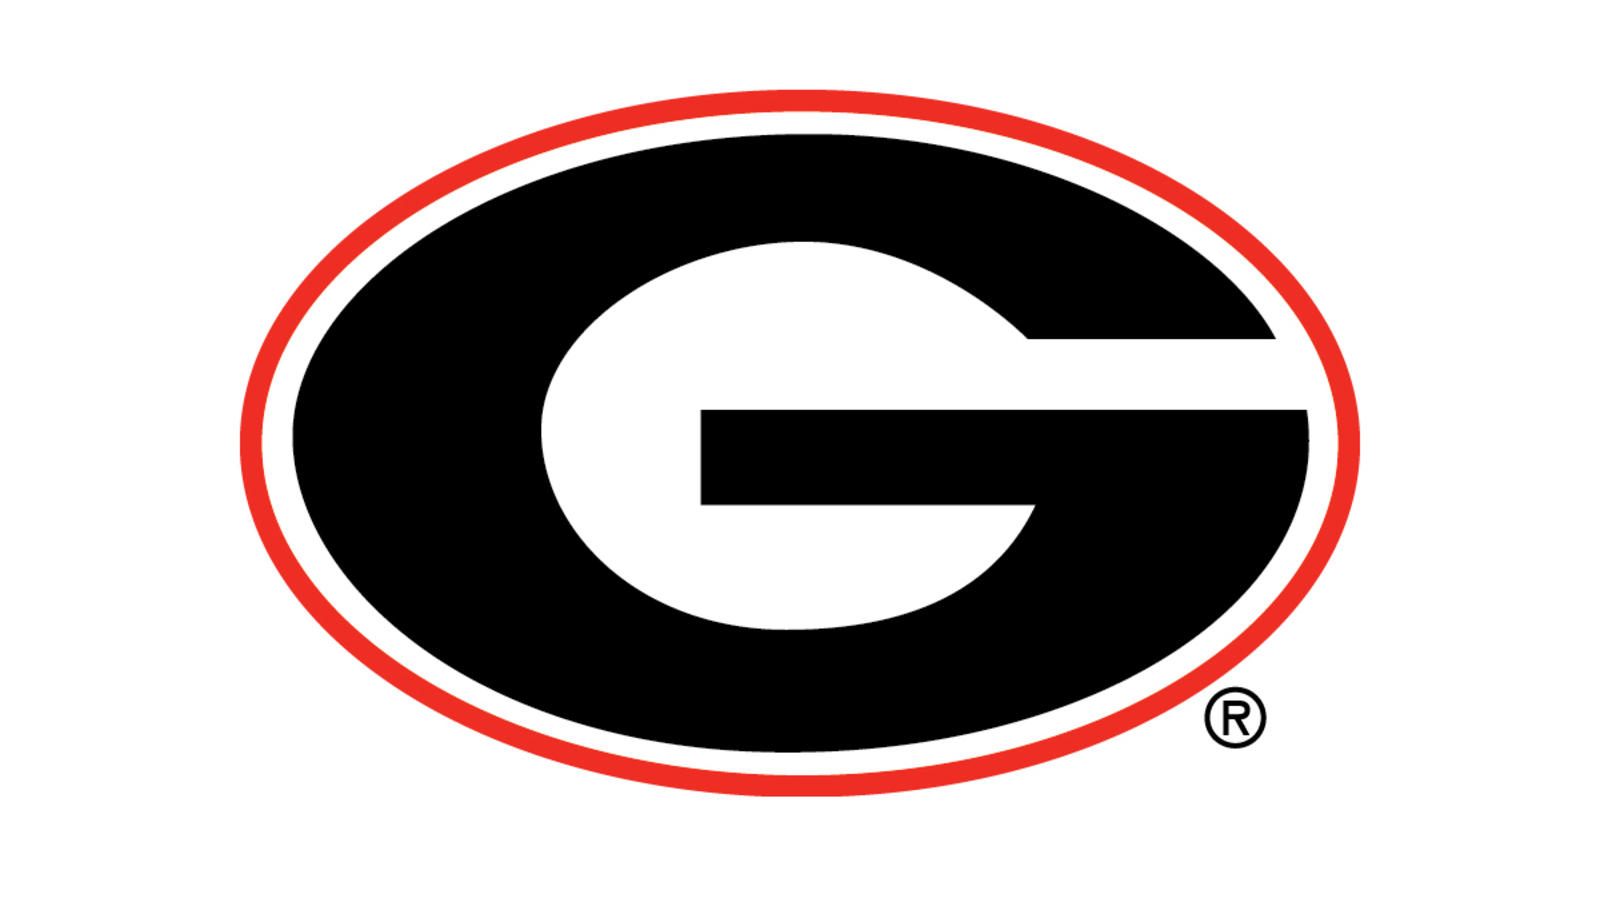 georgia athletics introduces new brand identity system nike news georgia athletics introduces new brand